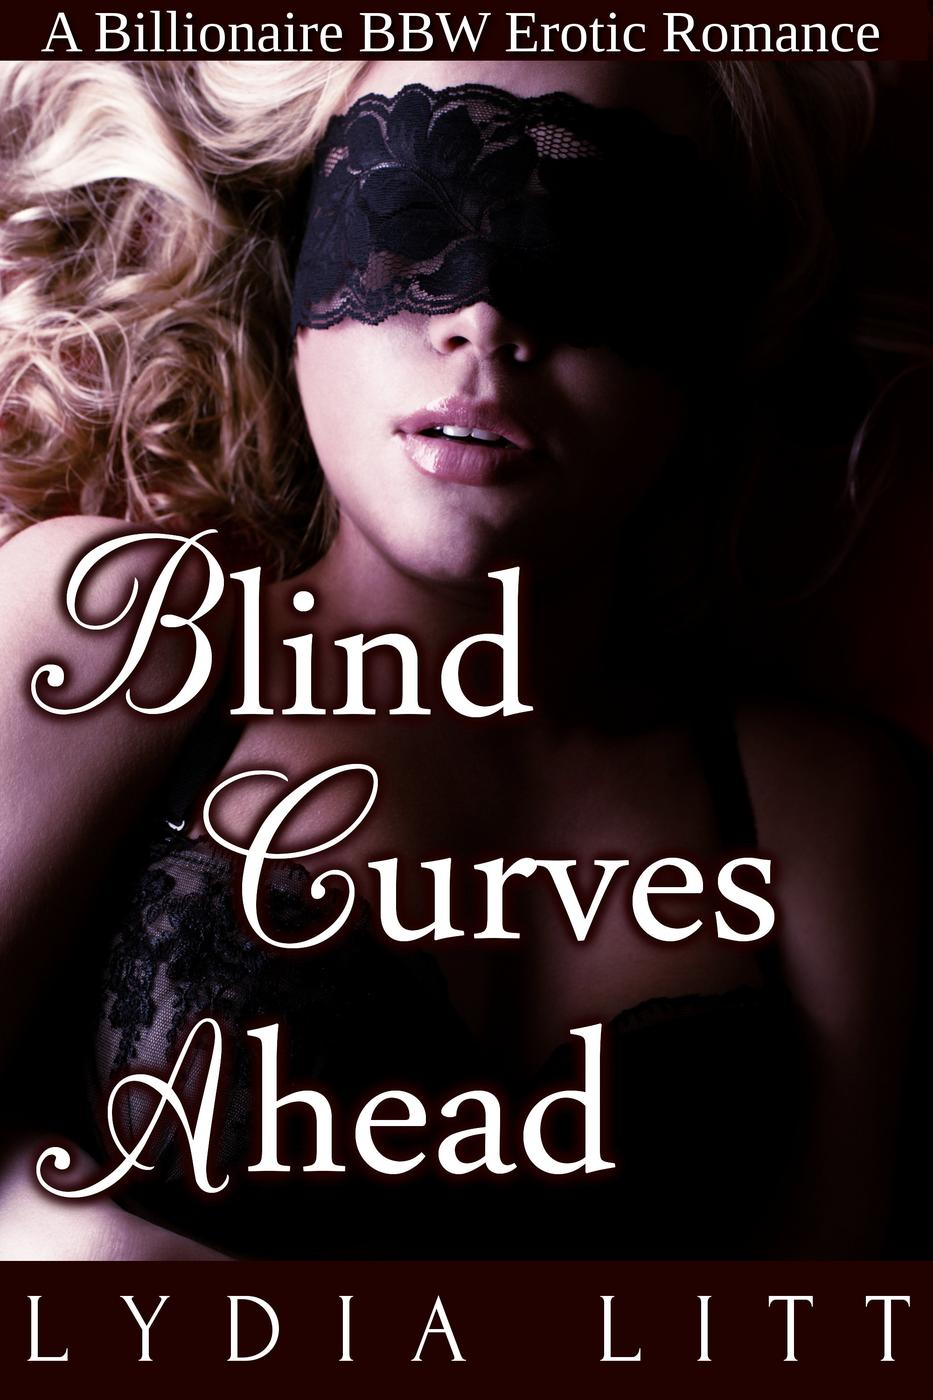 Blind Curves Ahead: A Billionaire BBW Erotic Romance